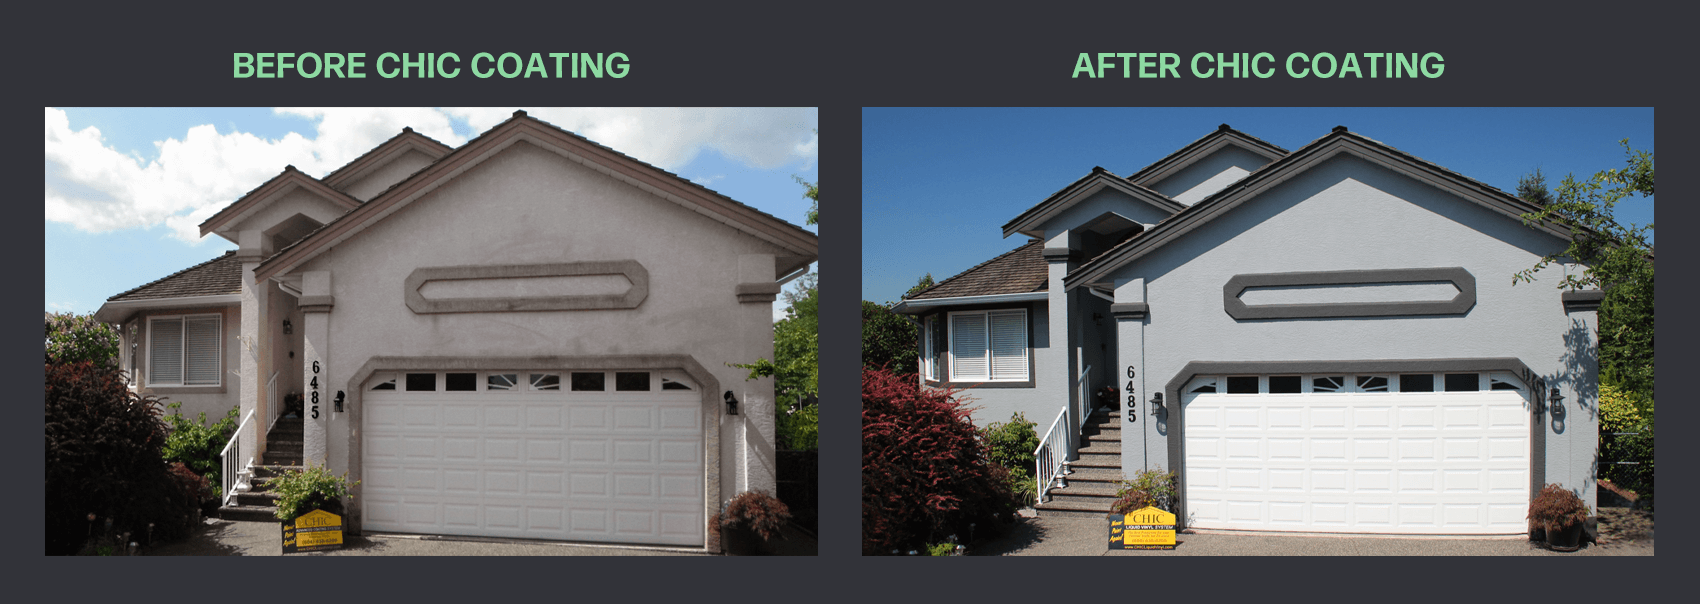 Before and after of CHIC stucco coating